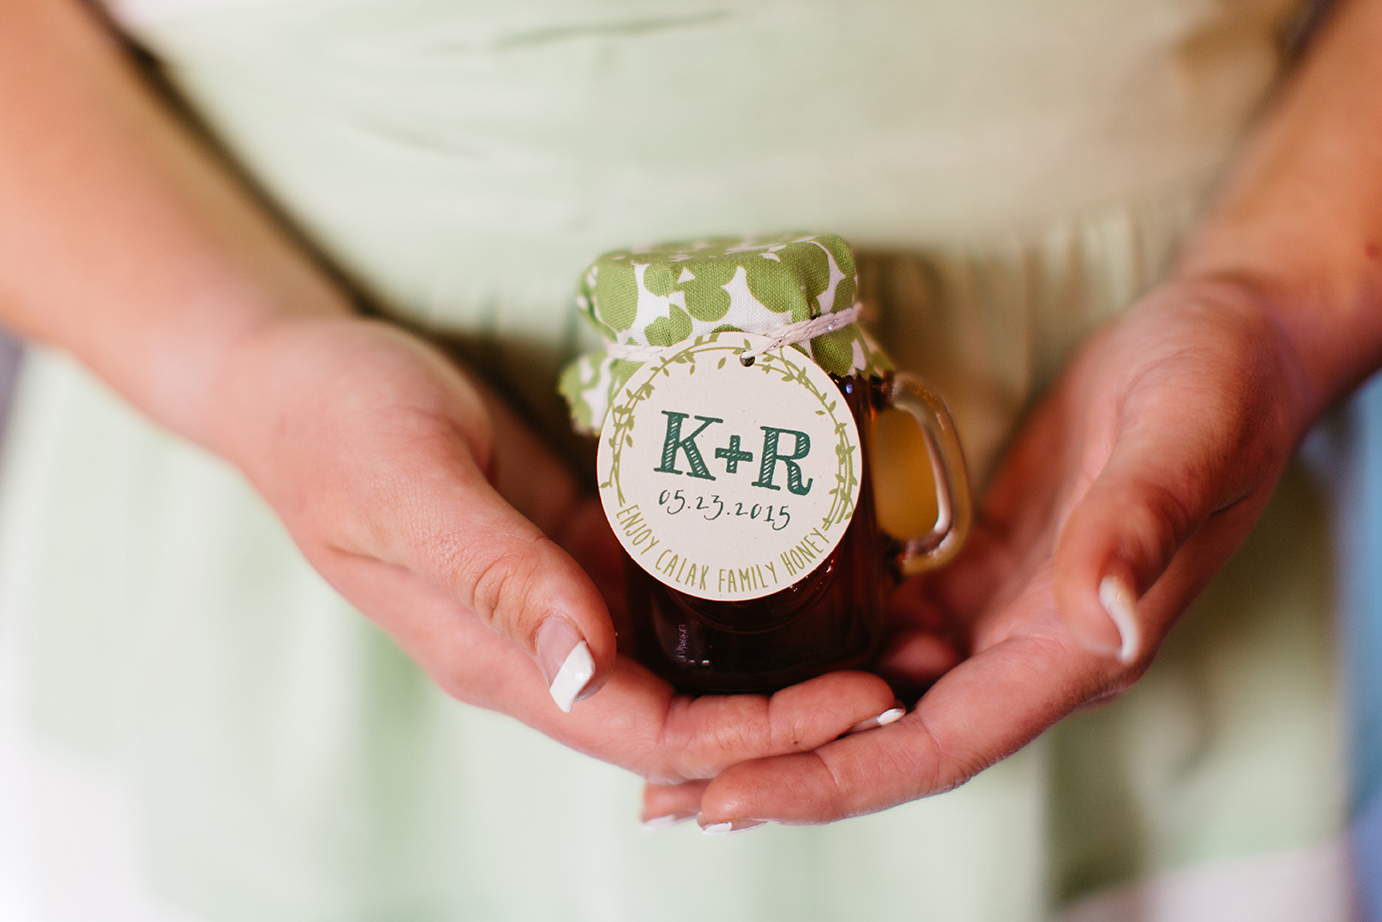 Honey Wedding Favor, green patterned fabric, bakers twine and favor tag with monogram